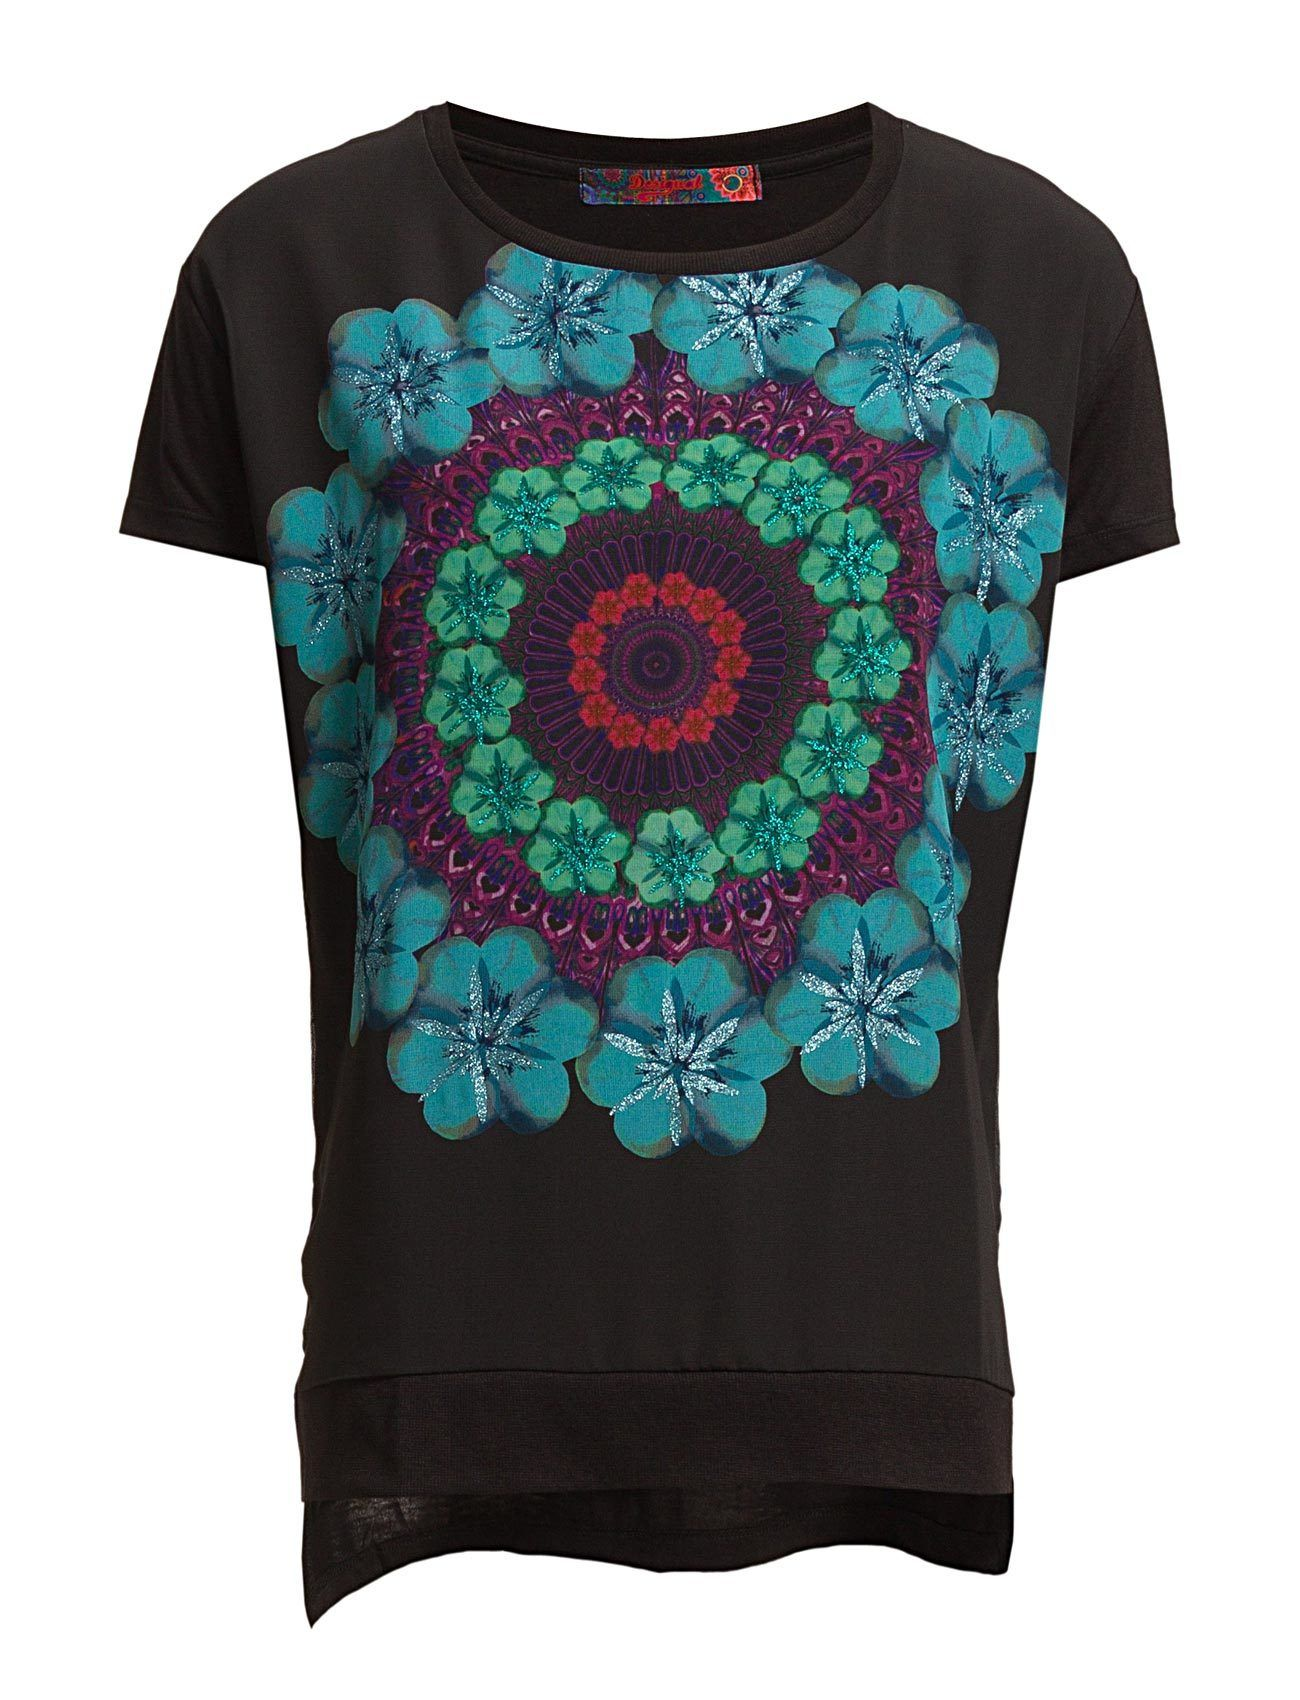 Desigual TS_LUCY (With images) | Desigual, Women, Style